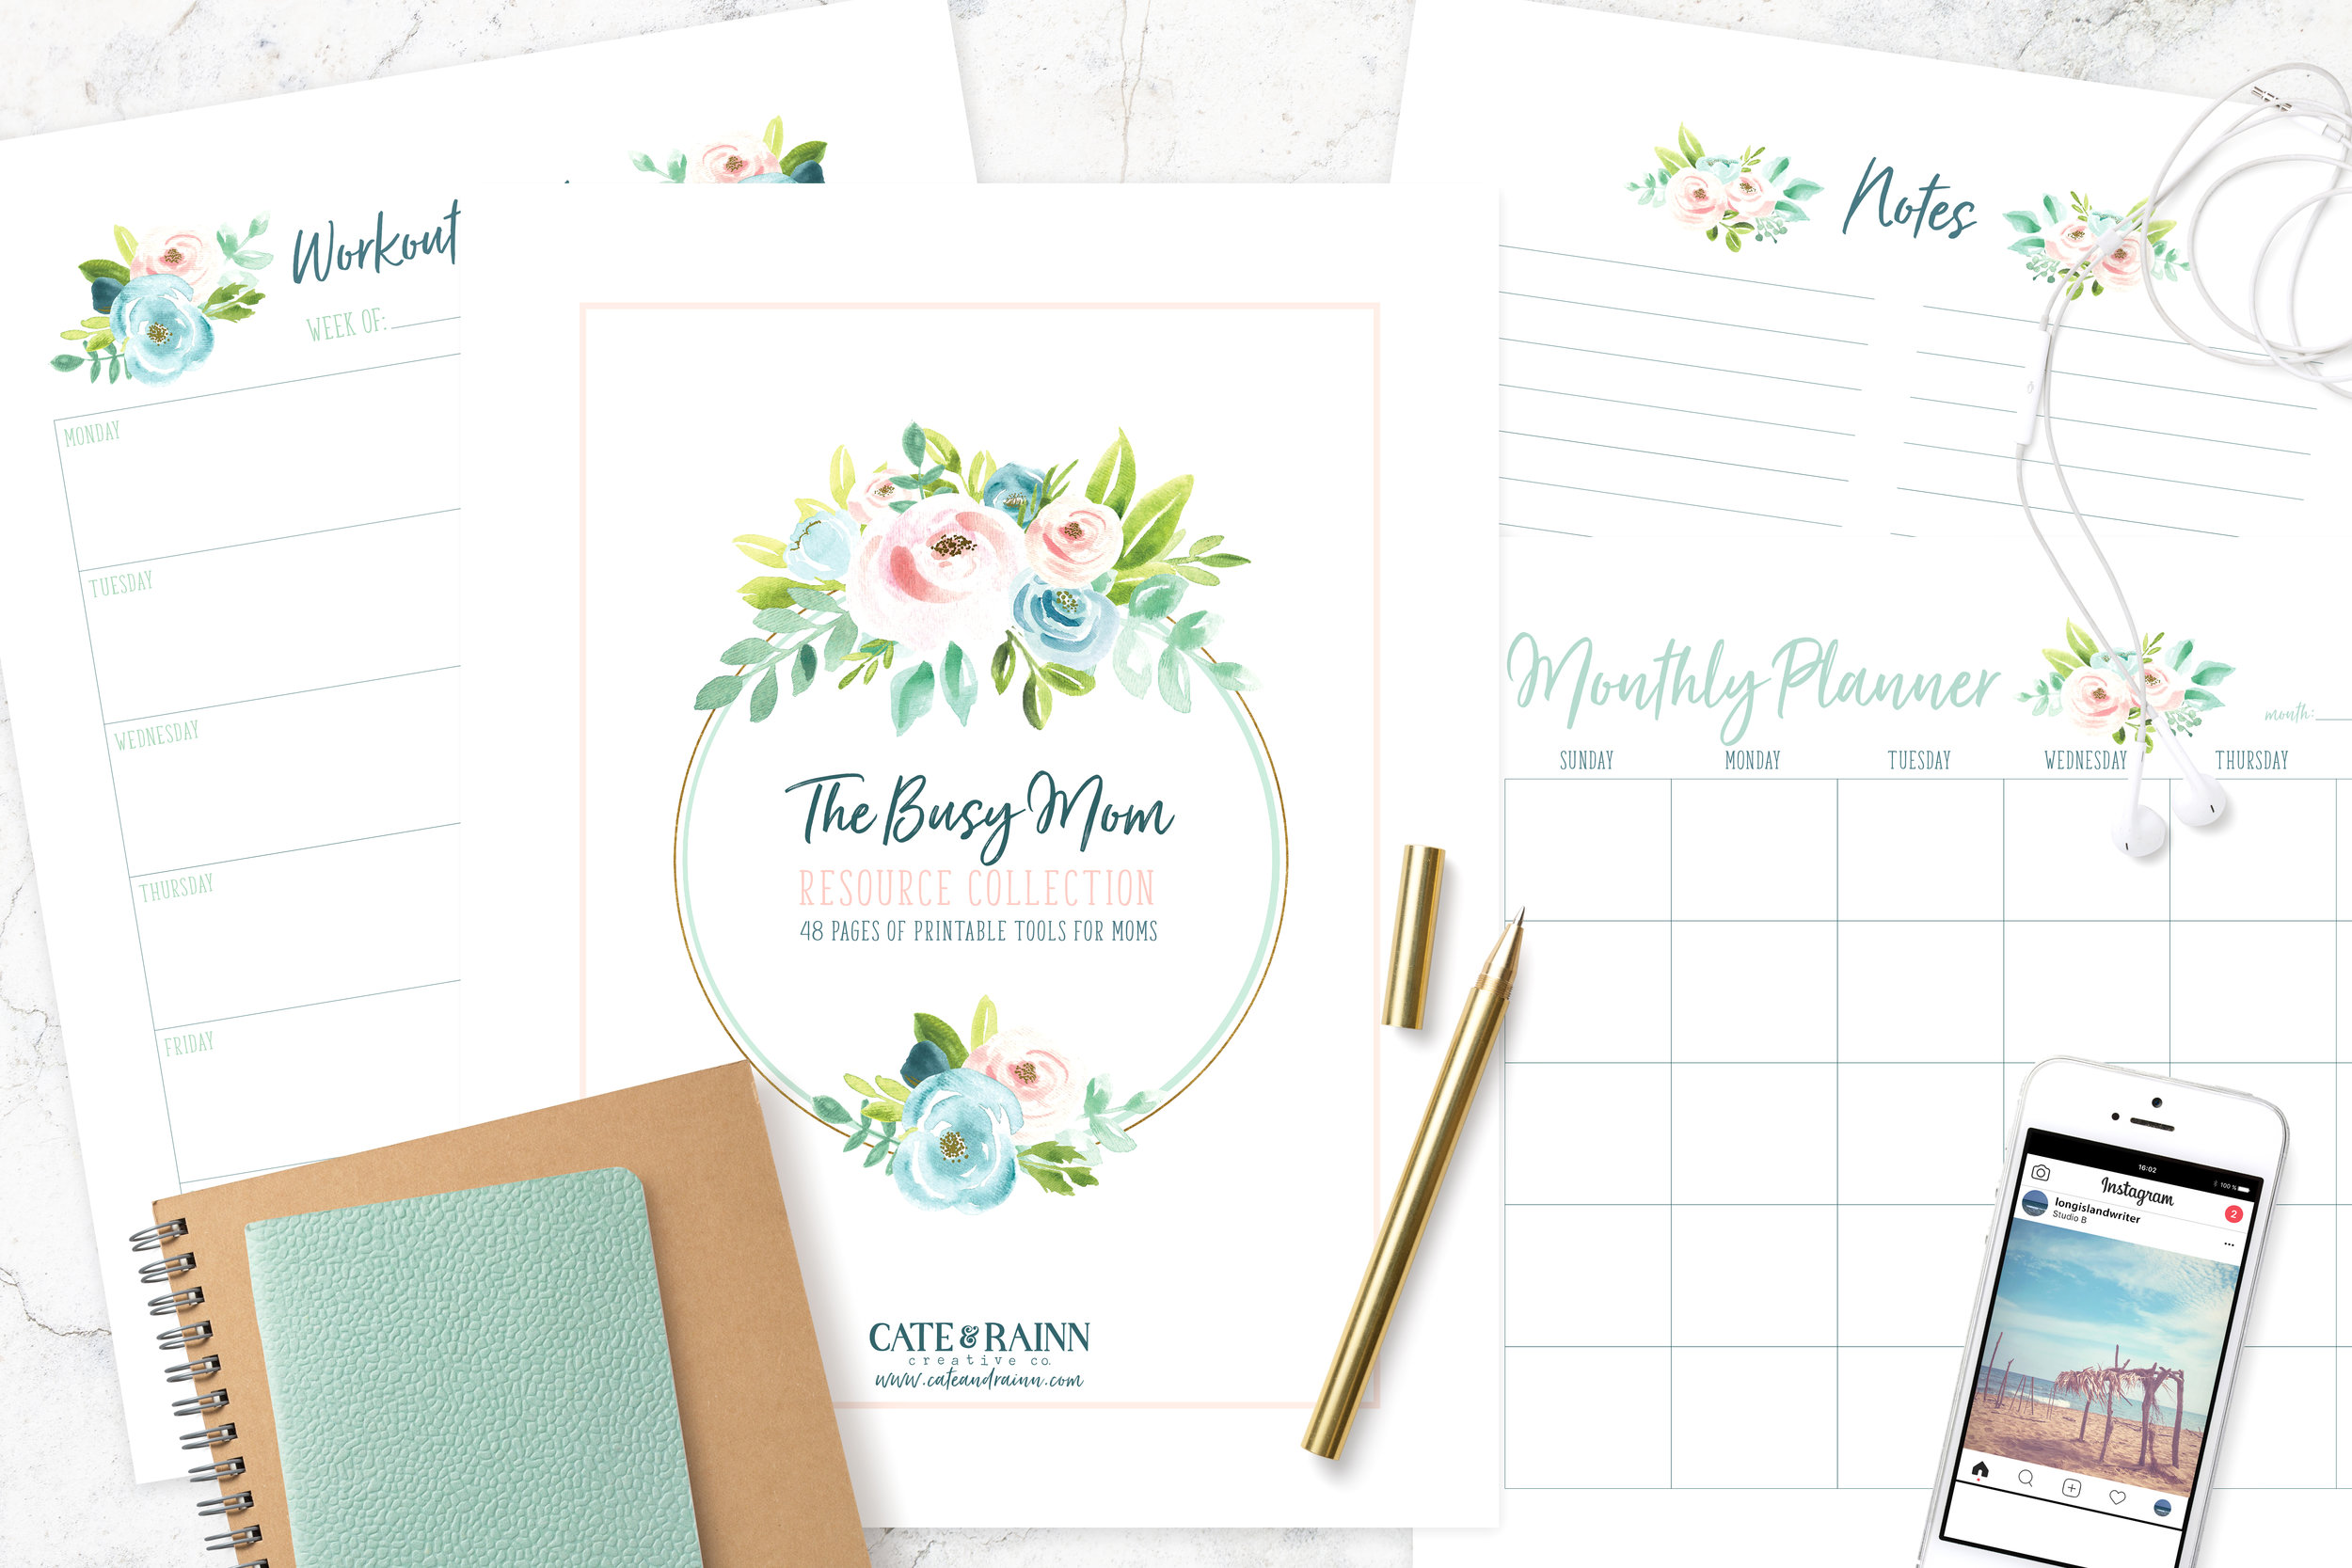 The Busy Mom Resource Collection